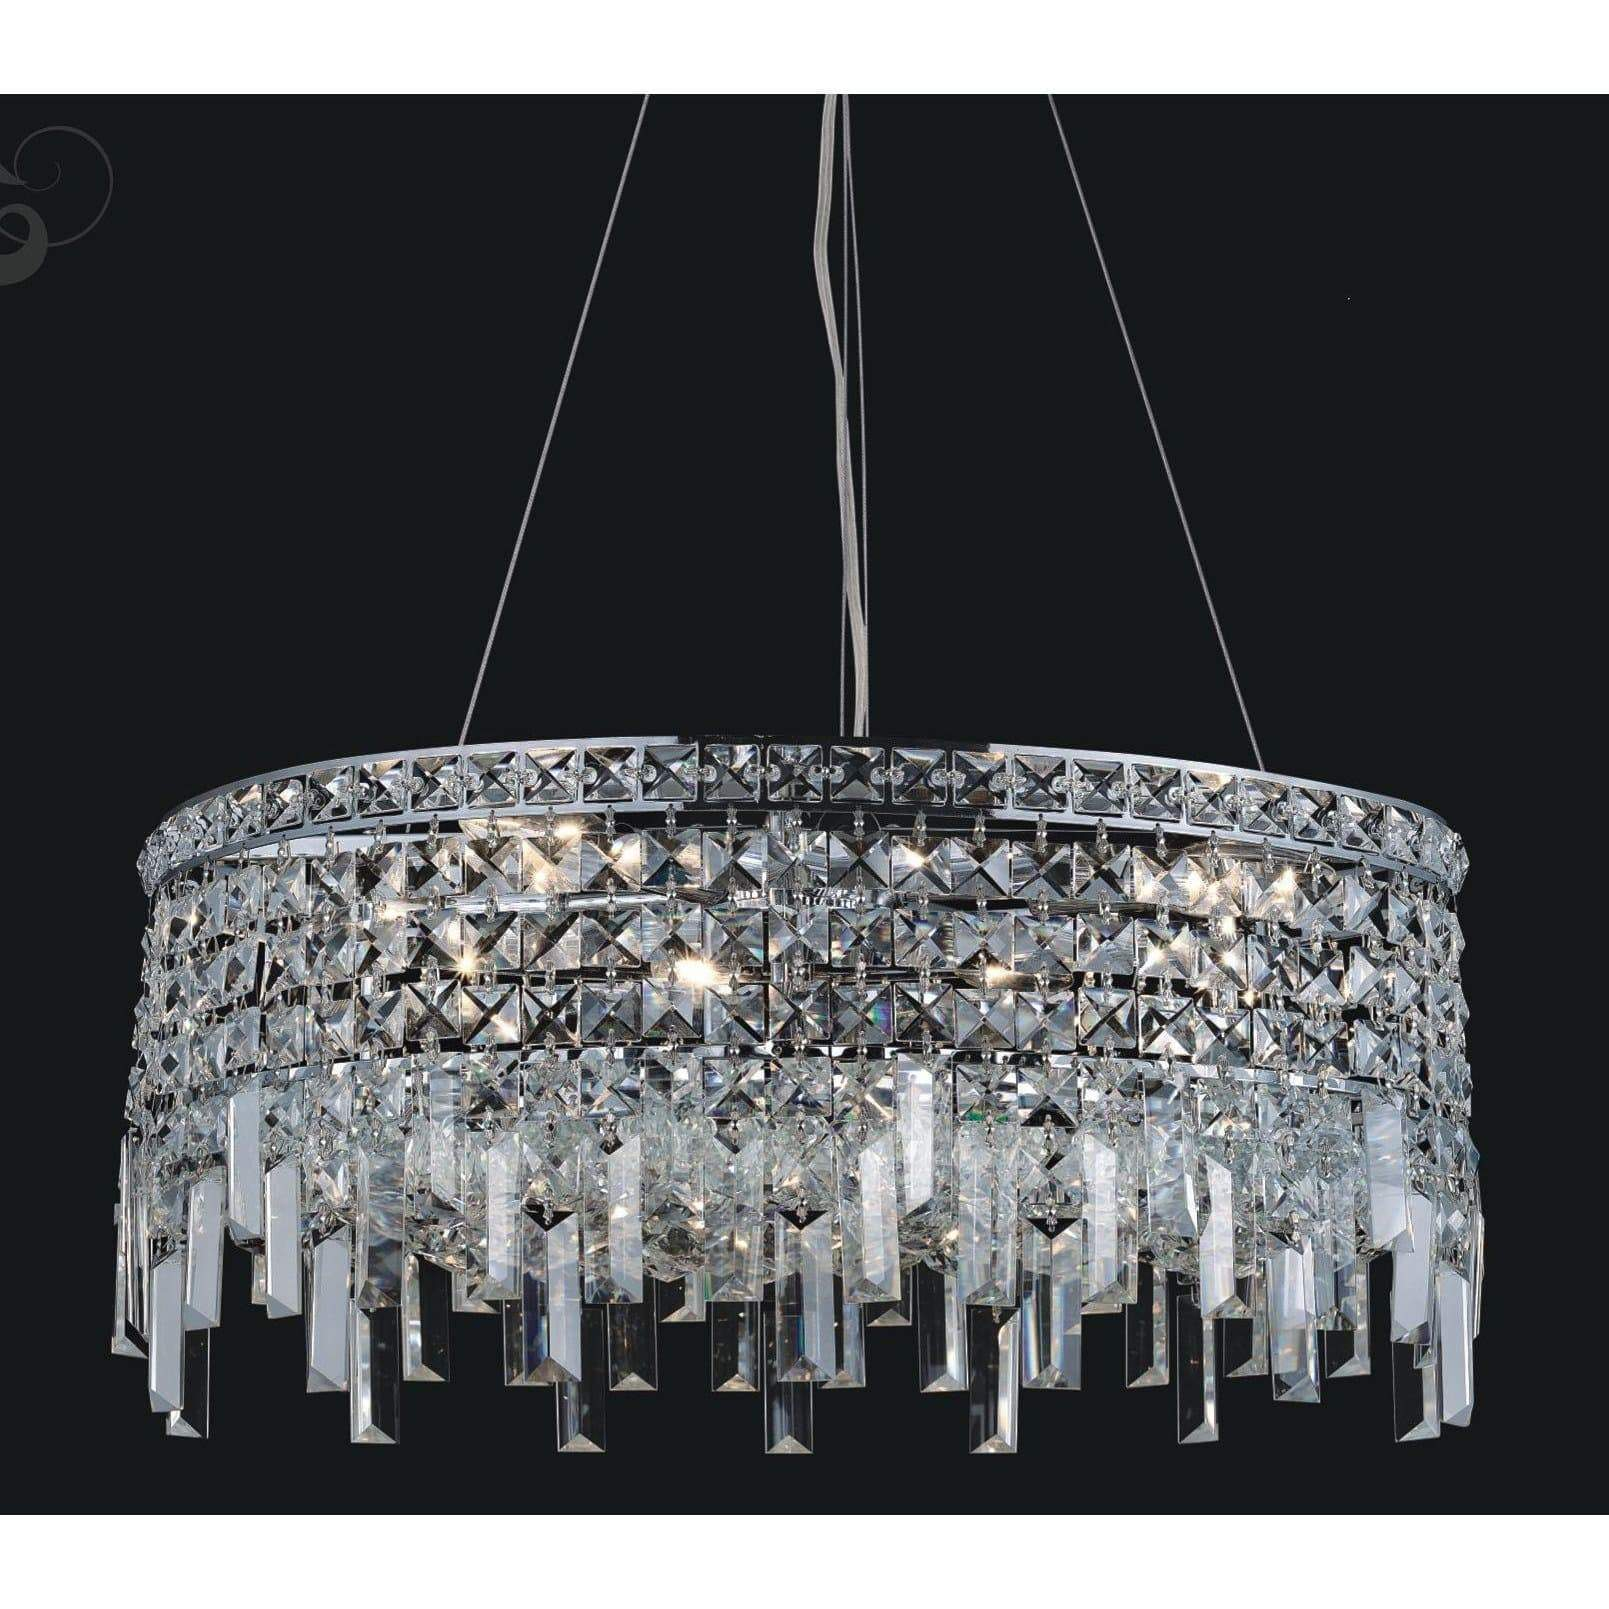 CWI Lighting Chandeliers Chrome / K9 Clear Colosseum 10 Light Down Chandelier with Chrome finish by CWI Lighting 8031P24C-R